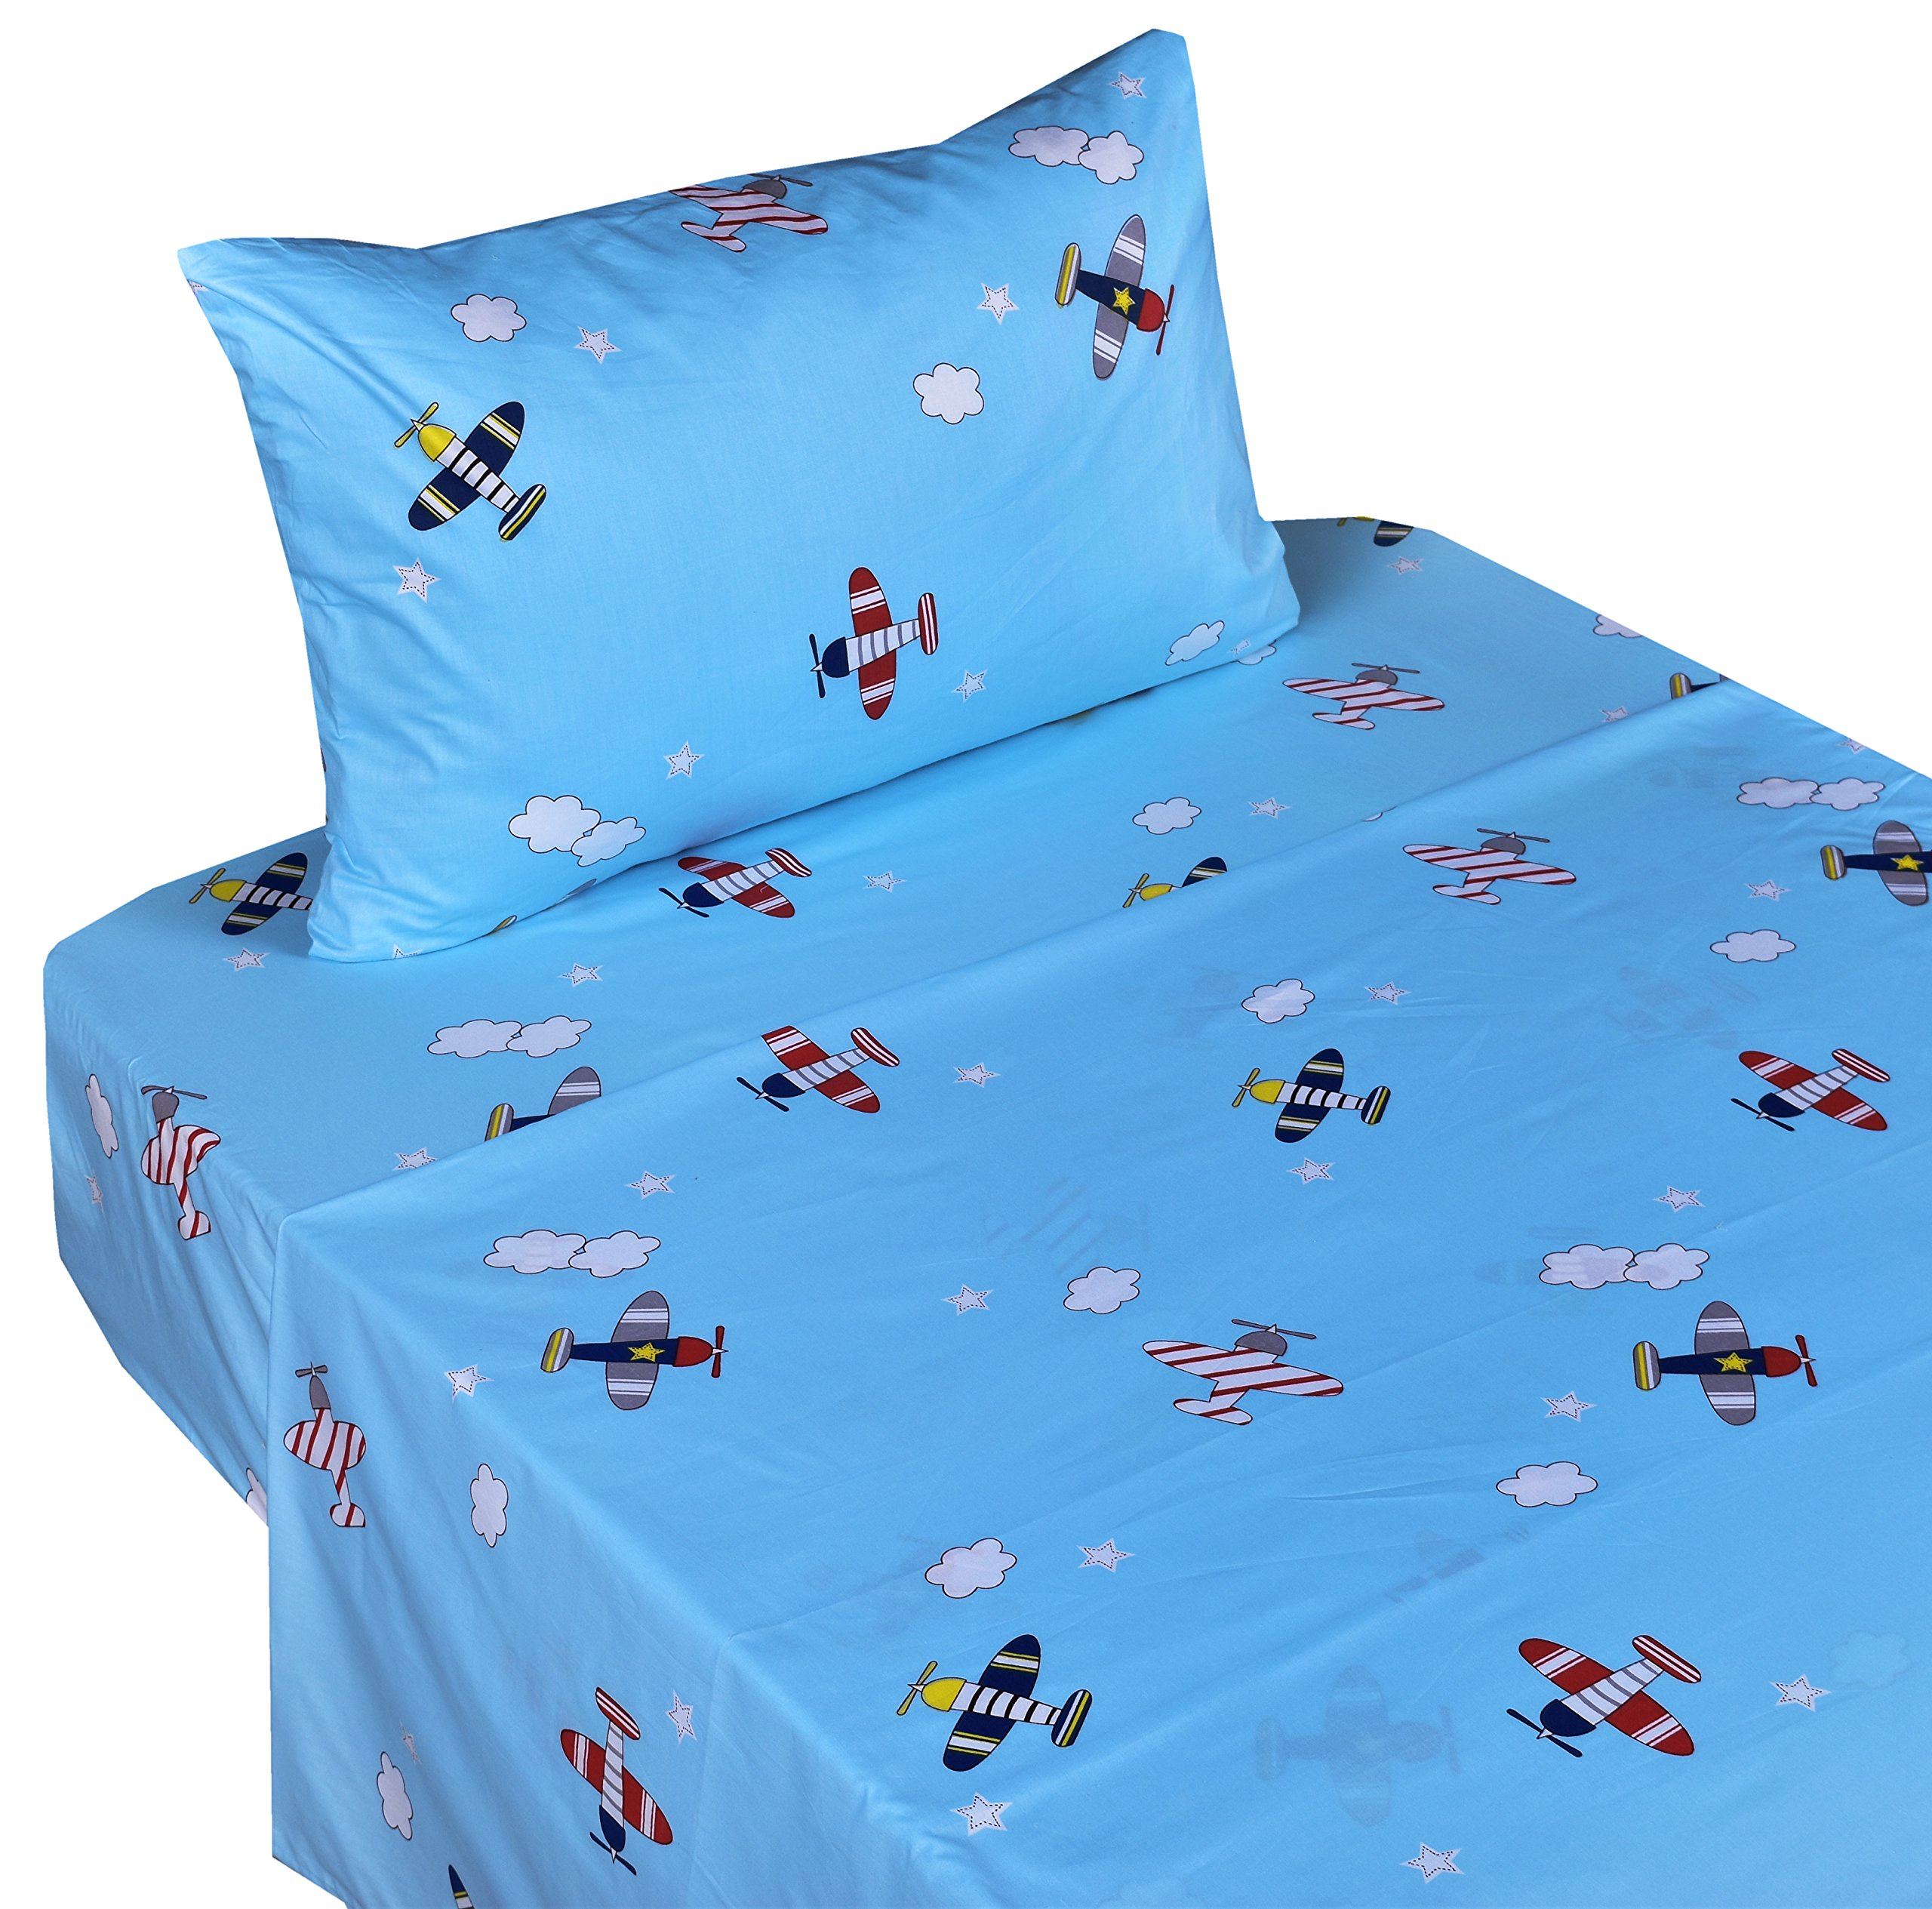 J-pinno Airplane Fly in Blue Sky Twin Sheet Set for Kids Boy Children,100% Cotton, Flat Sheet + Fitted Sheet + Pillowcase Bedding Set